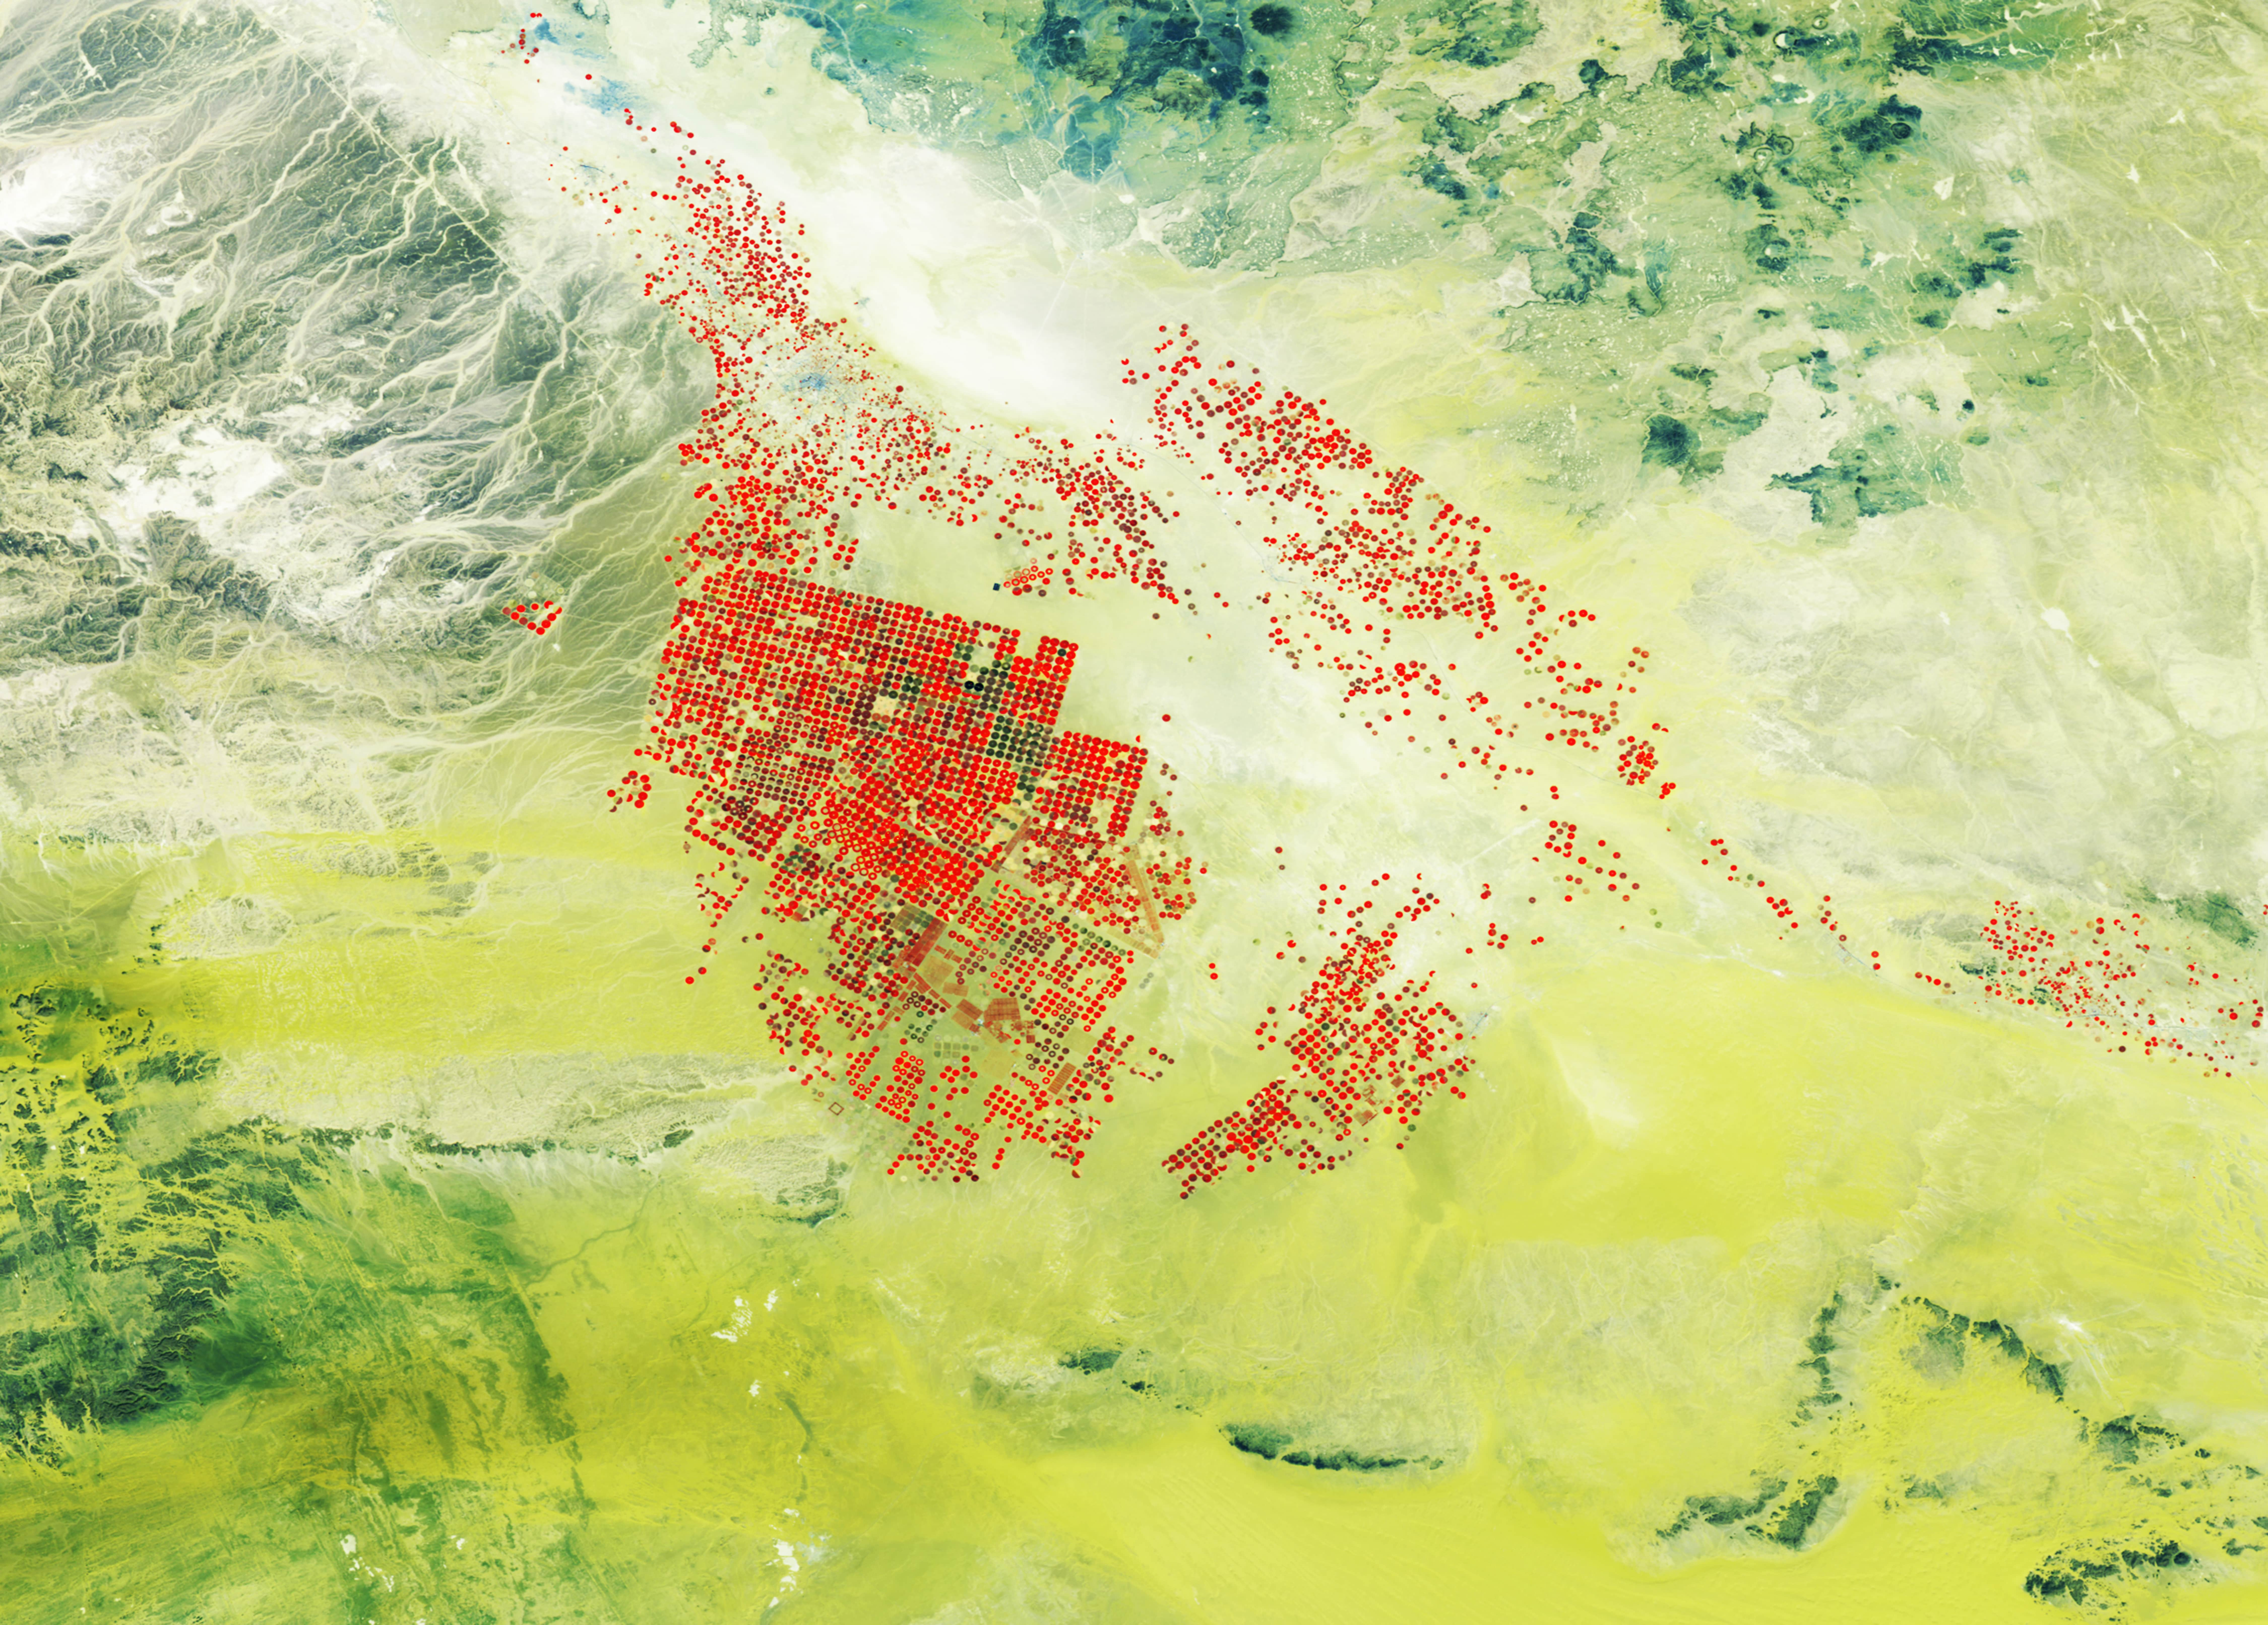 PROBA-V 100 m image of modern agricultural fields with centre-pivot irrigation (in red) and consumption of underground water resources in the Wadi As Sirhan basin of Saudi Arabia